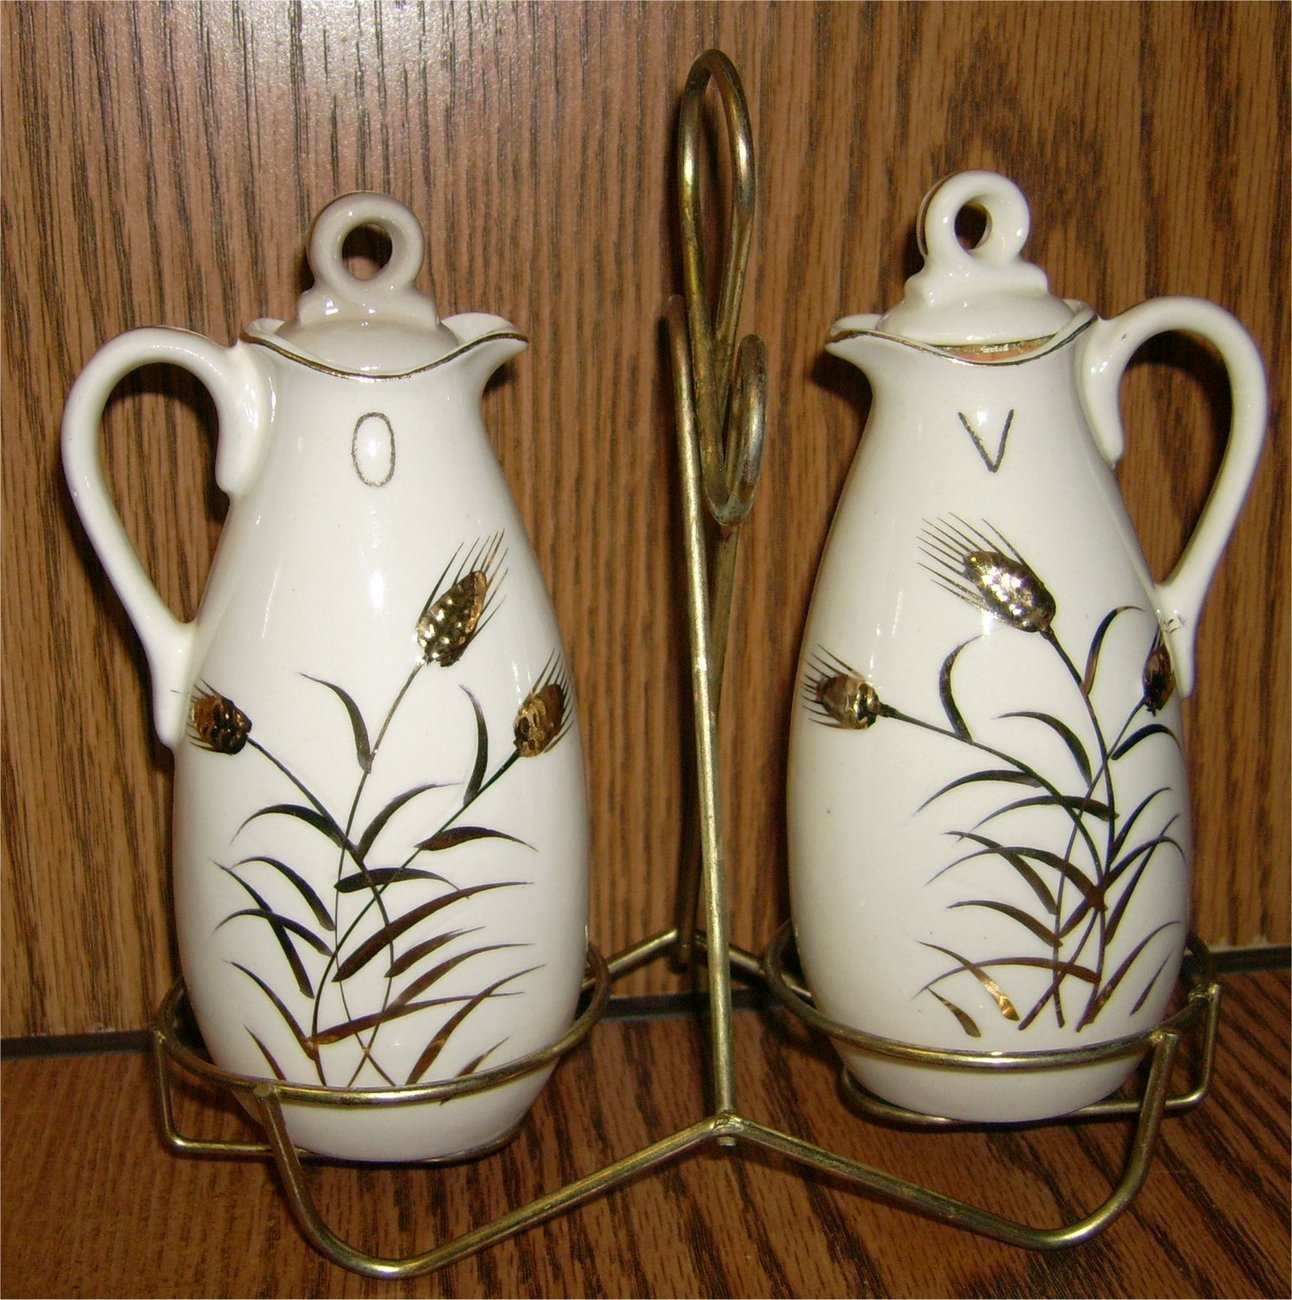 Vintage Golden Wheat Oil and Vinegar Cruets